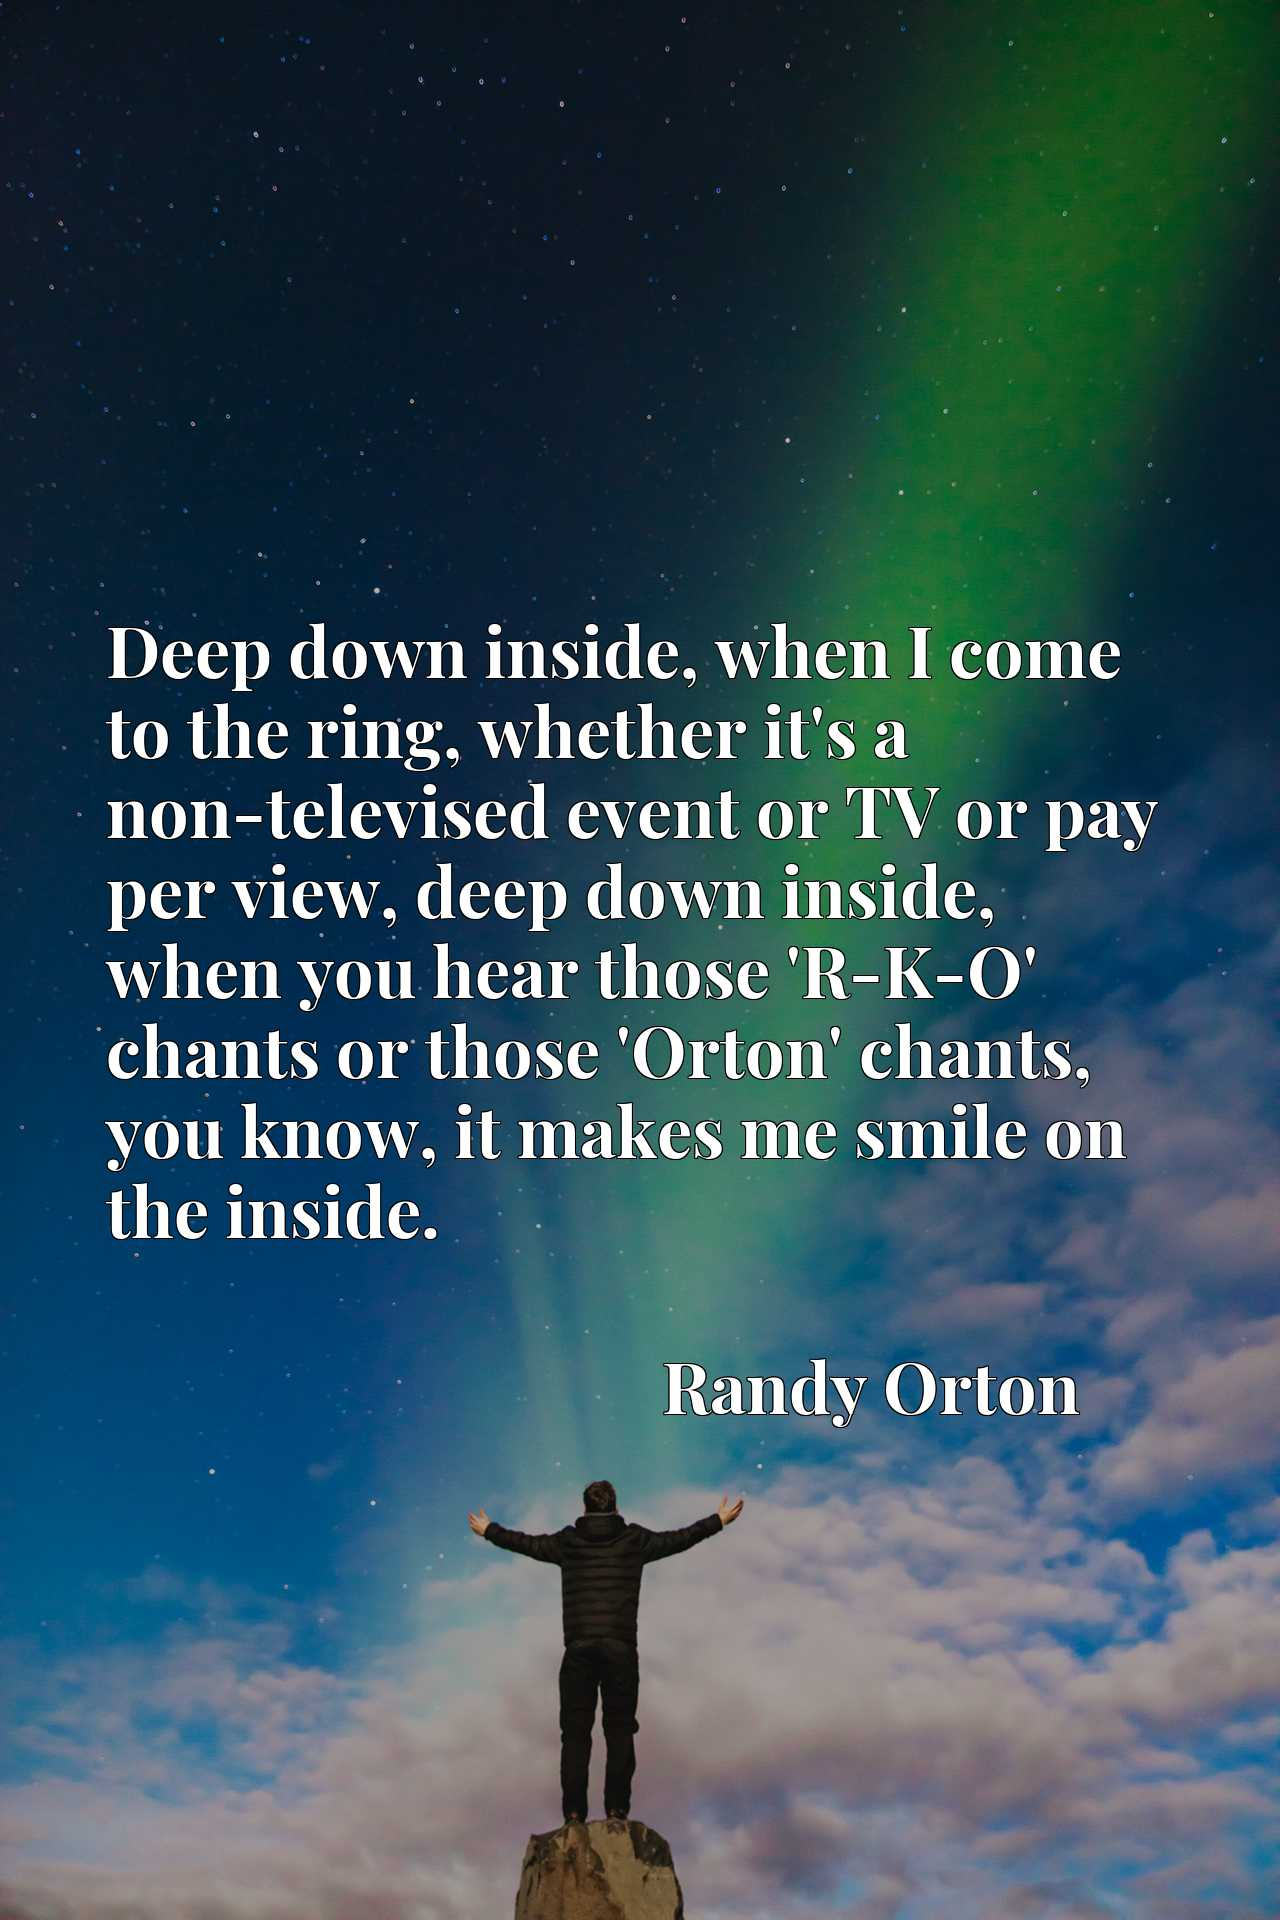 Deep down inside, when I come to the ring, whether it's a non-televised event or TV or pay per view, deep down inside, when you hear those 'R-K-O' chants or those 'Orton' chants, you know, it makes me smile on the inside.